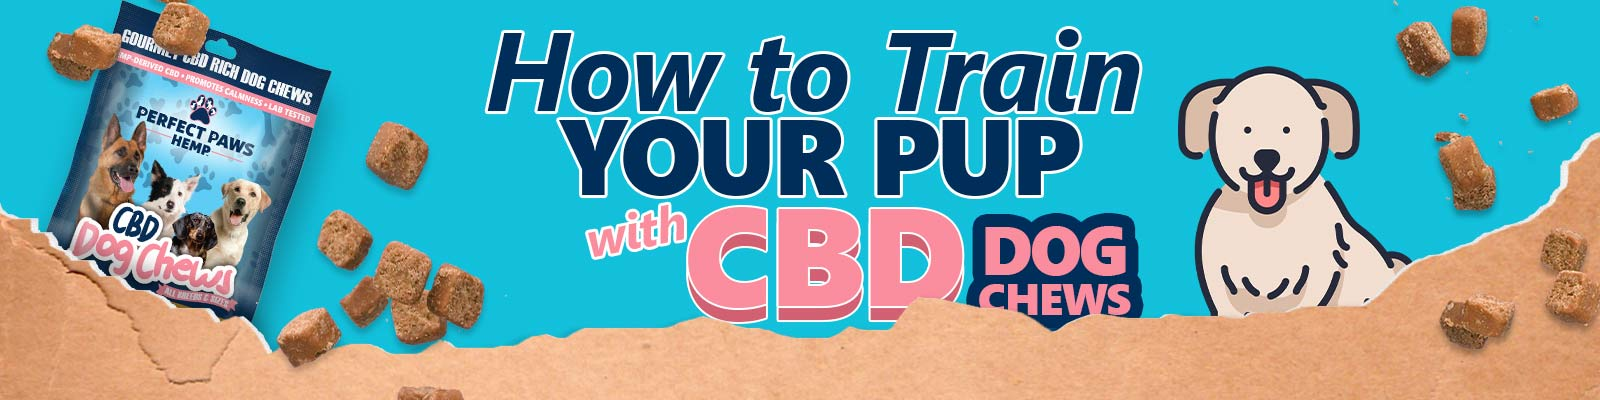 How to train your pup with CBD dog chews banner